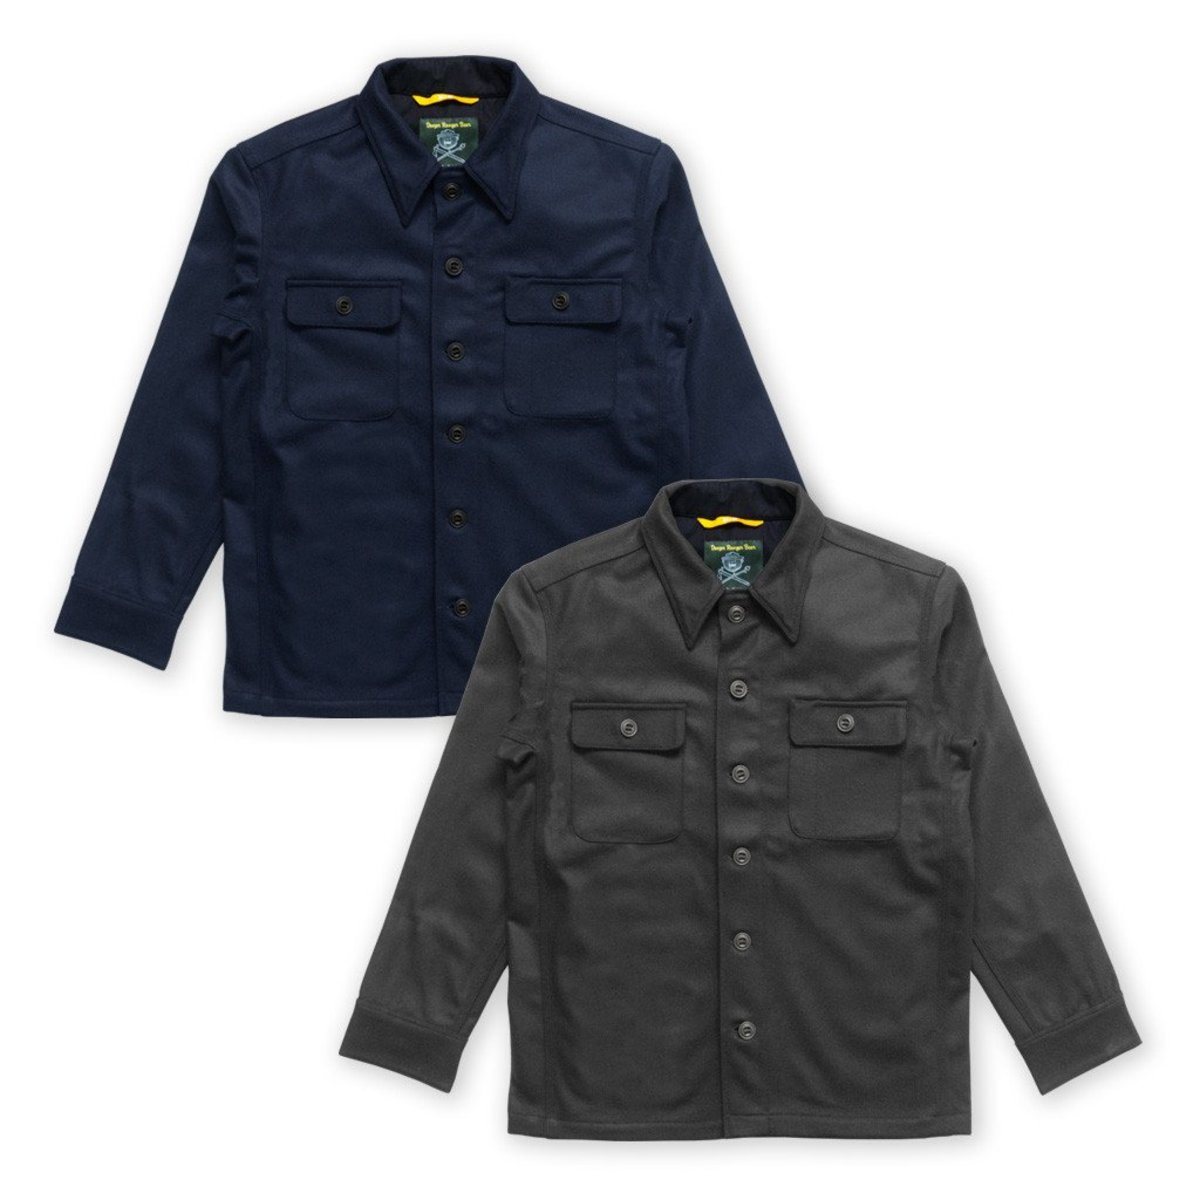 DRB Woodsman Shirt